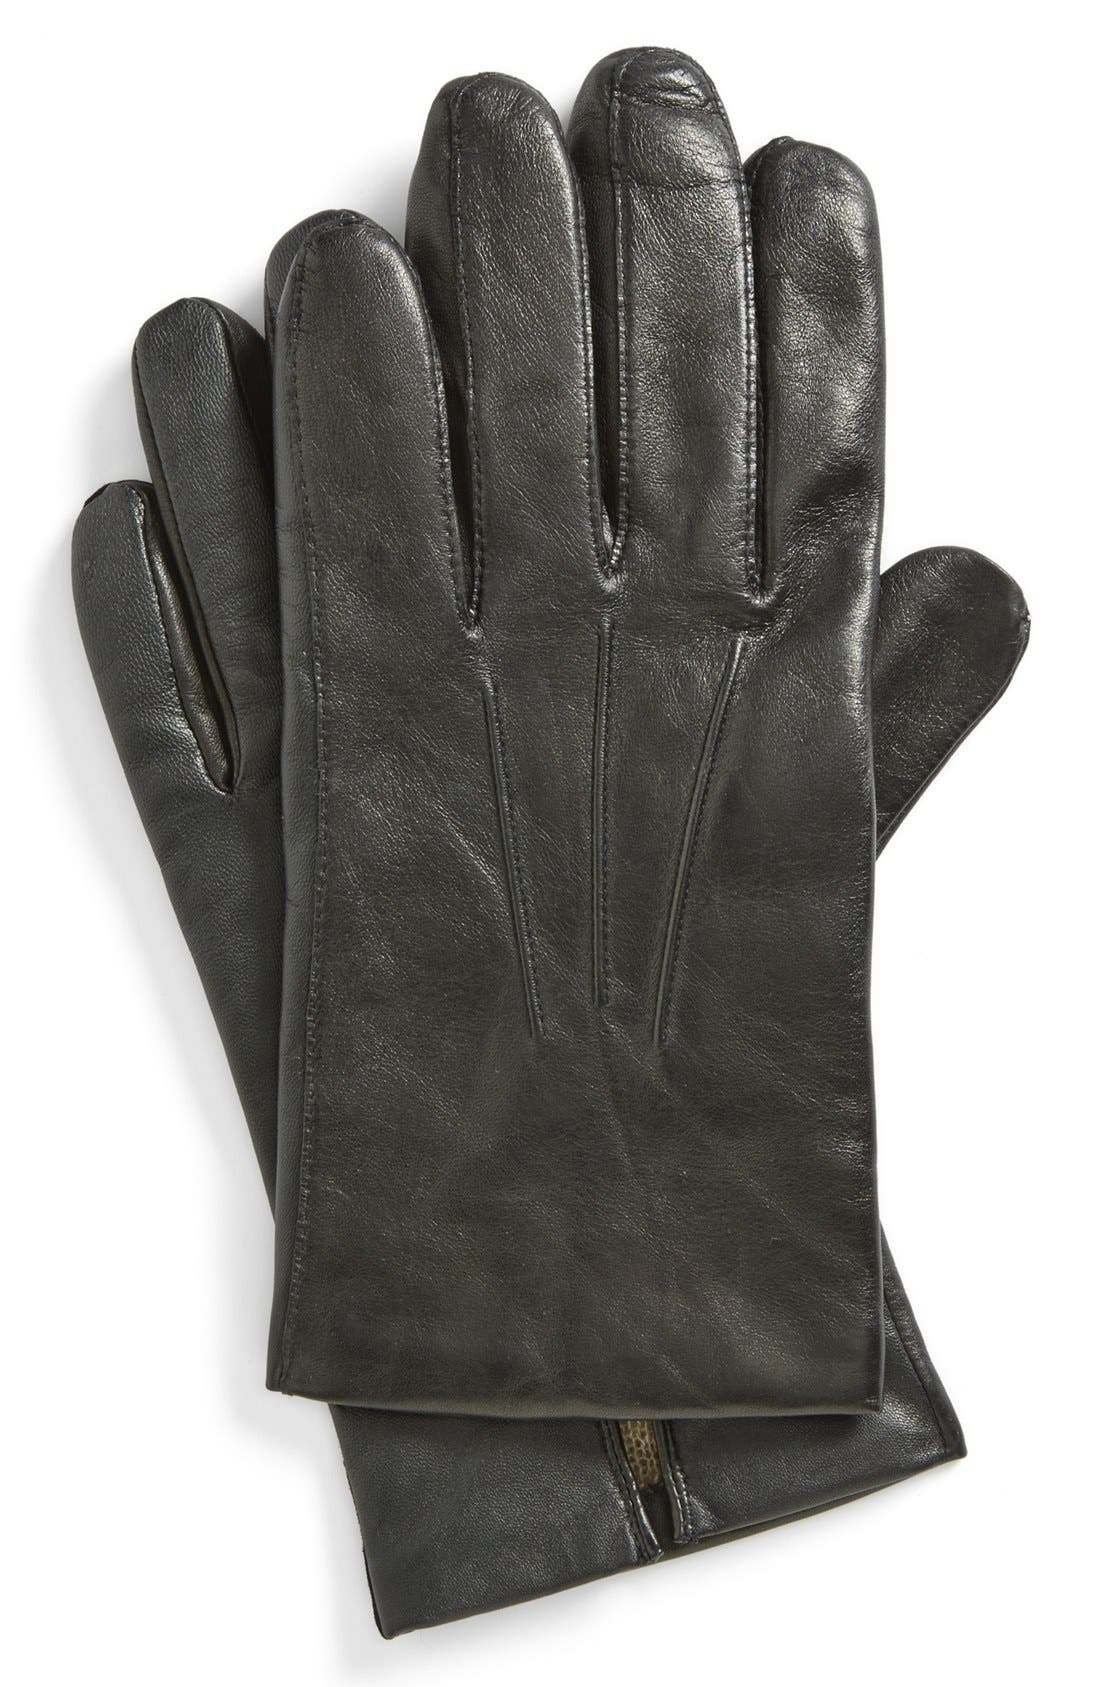 Alternate Image 1 Selected - John W. Nordstrom Tech Leather Gloves